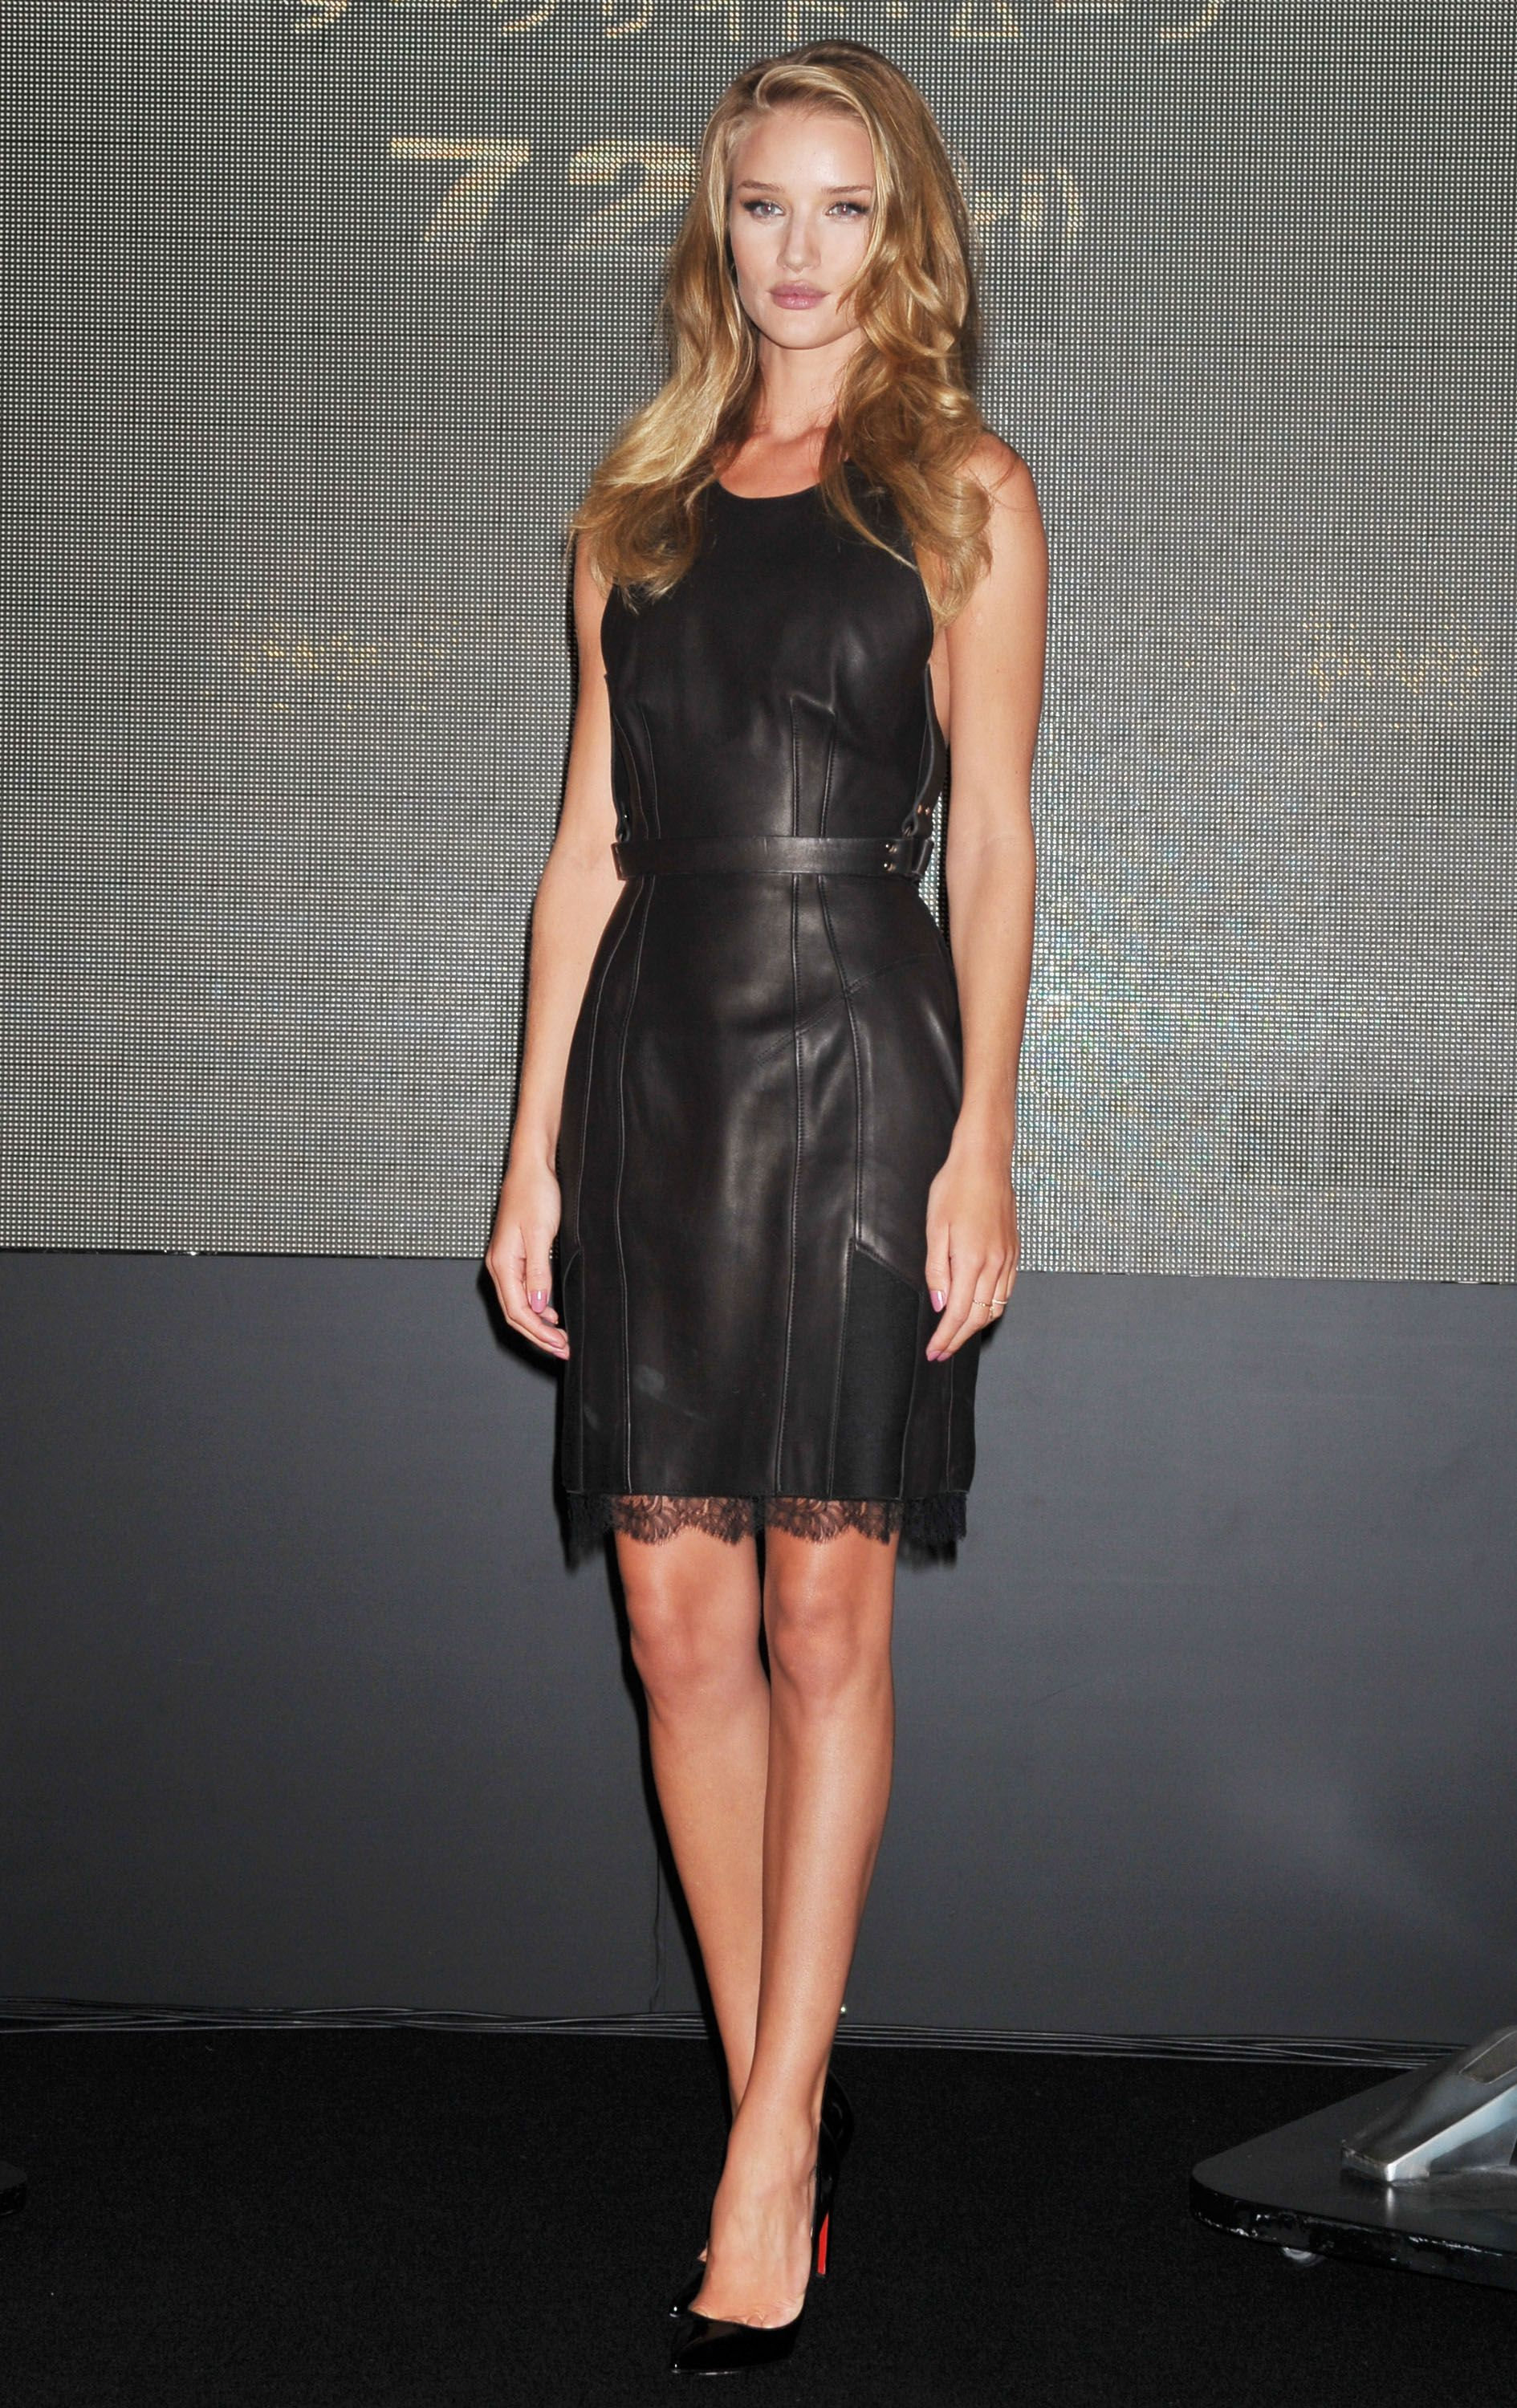 Celebrities In Leather: Rosie Huntington Whiteley in ...